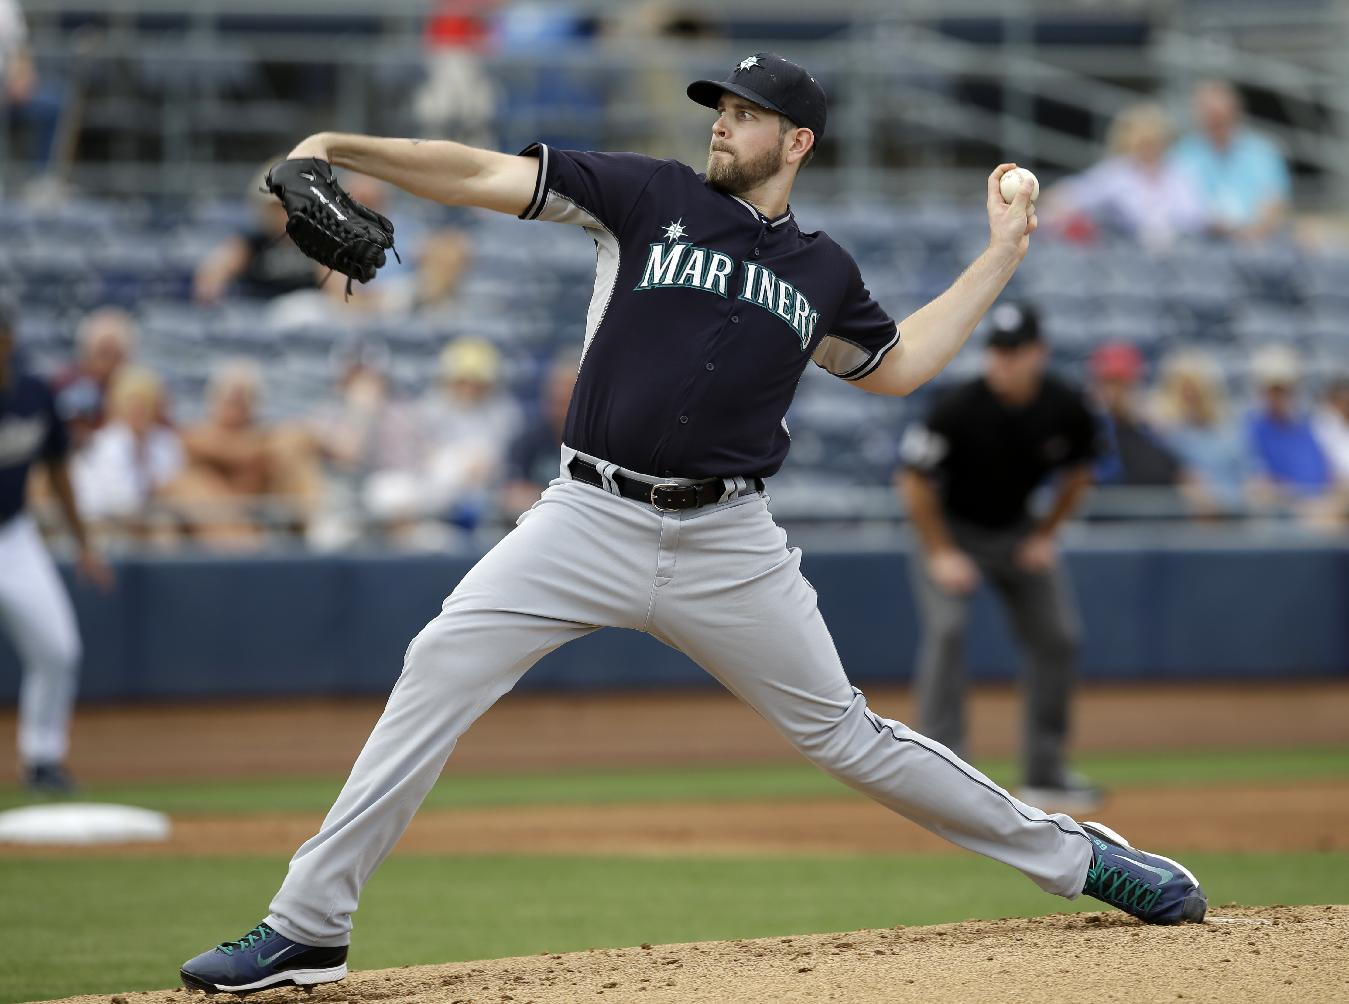 Seattle Mariners' James Paxton delivers to the San Diego Padres in the first inning of an exhibition baseball game on Friday Feb. 28, 2014, in Peoria, Ariz